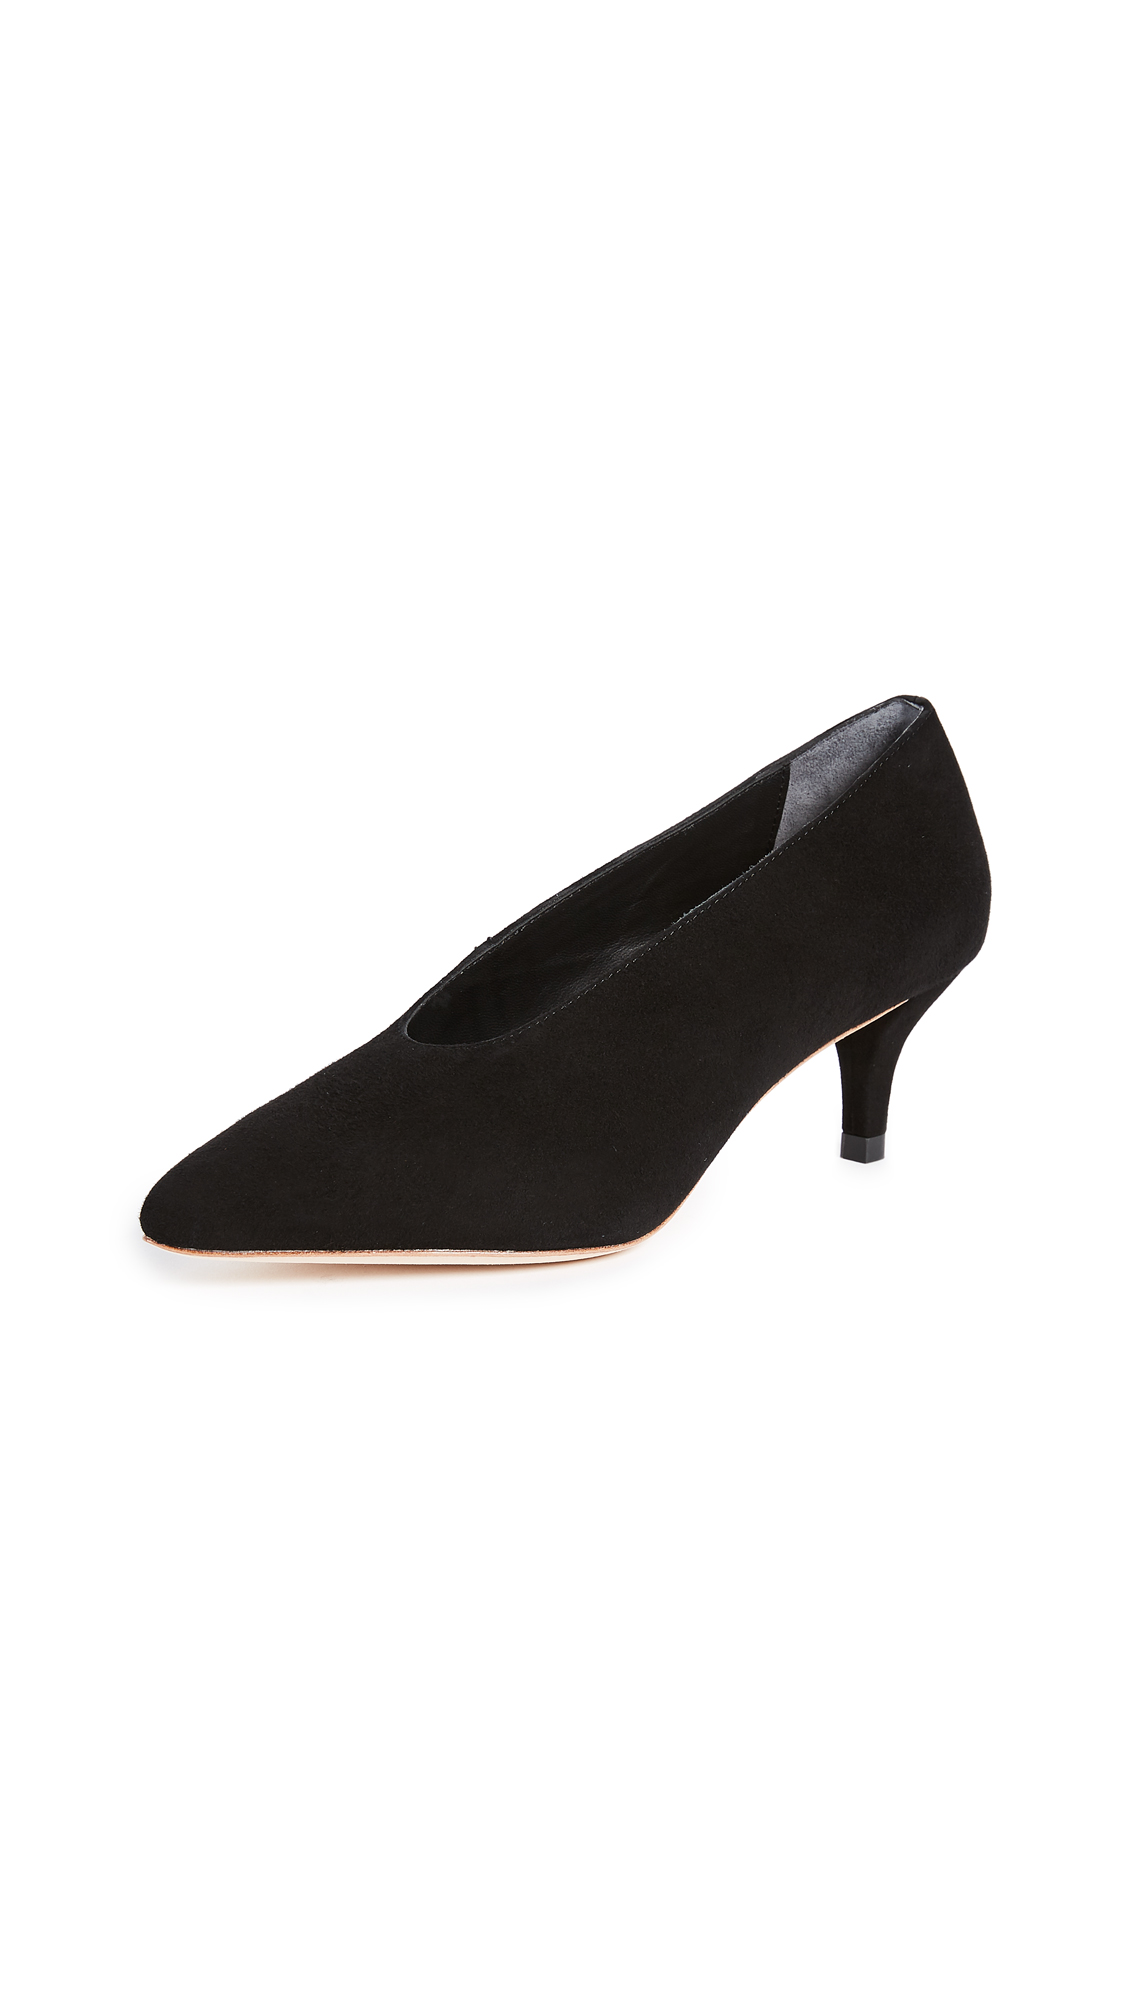 Loeffler Randall Janey Pumps - Black